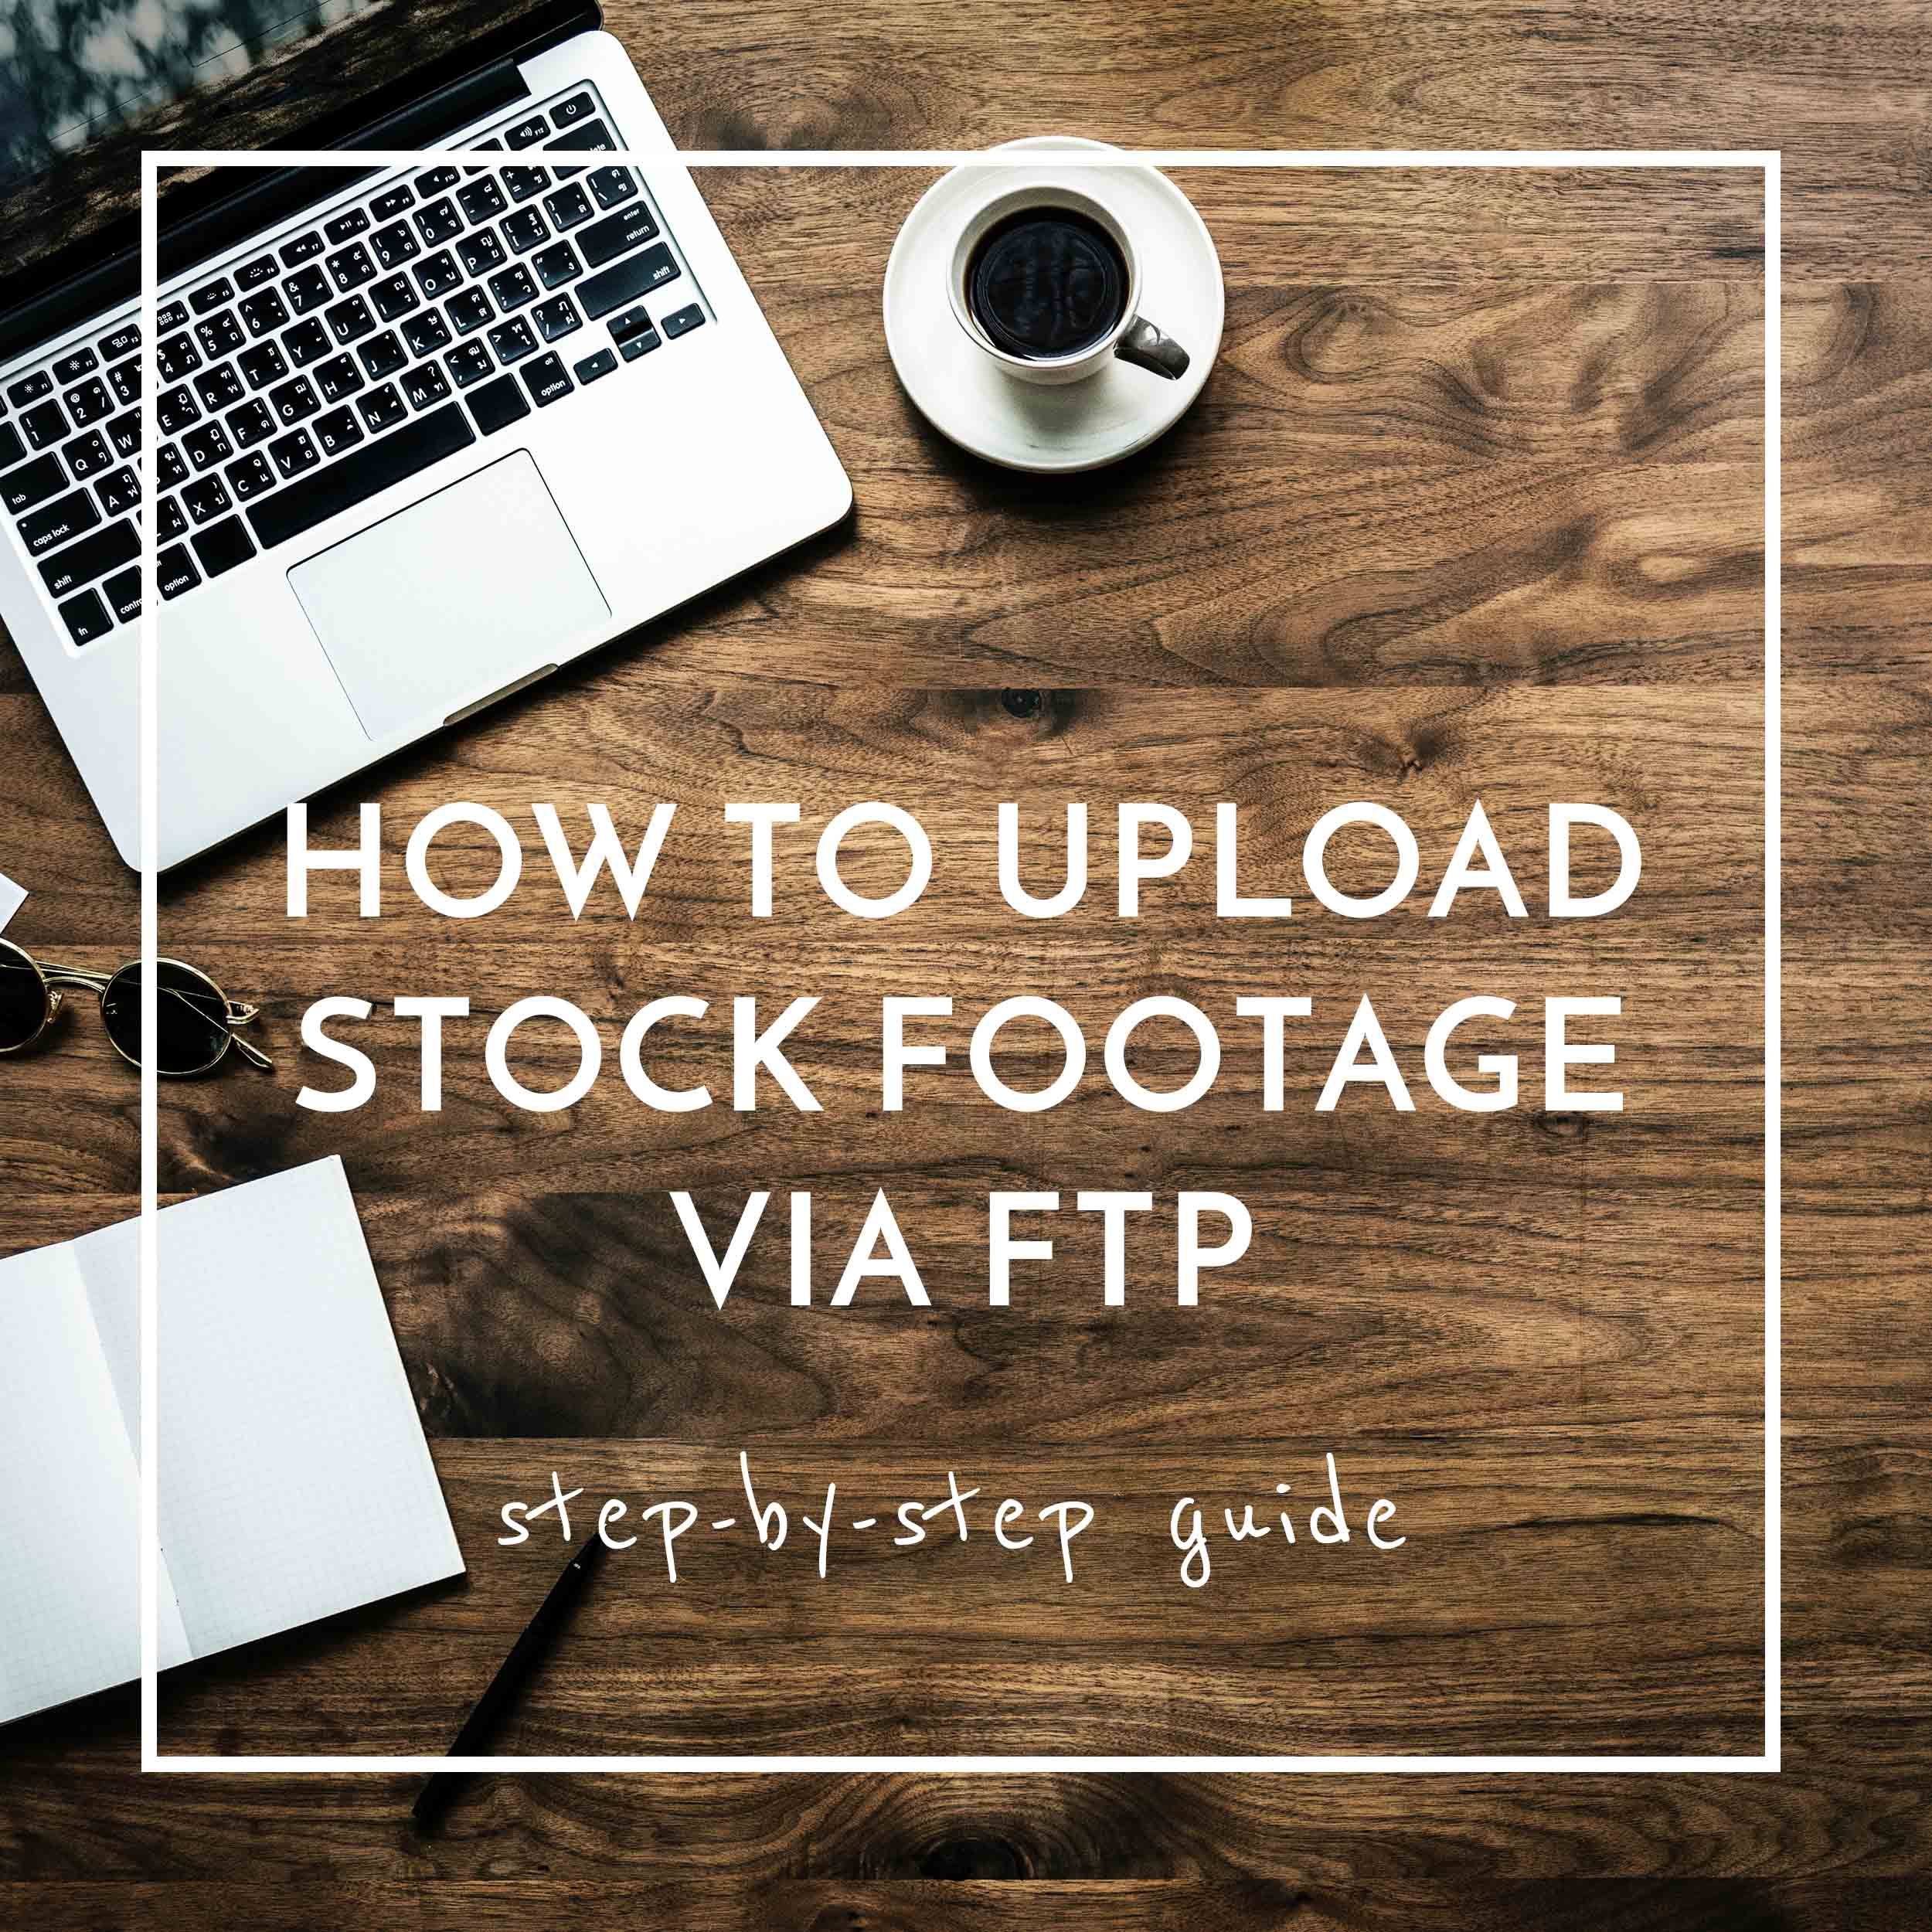 how-to-upload-footage-ftp-min.jpg